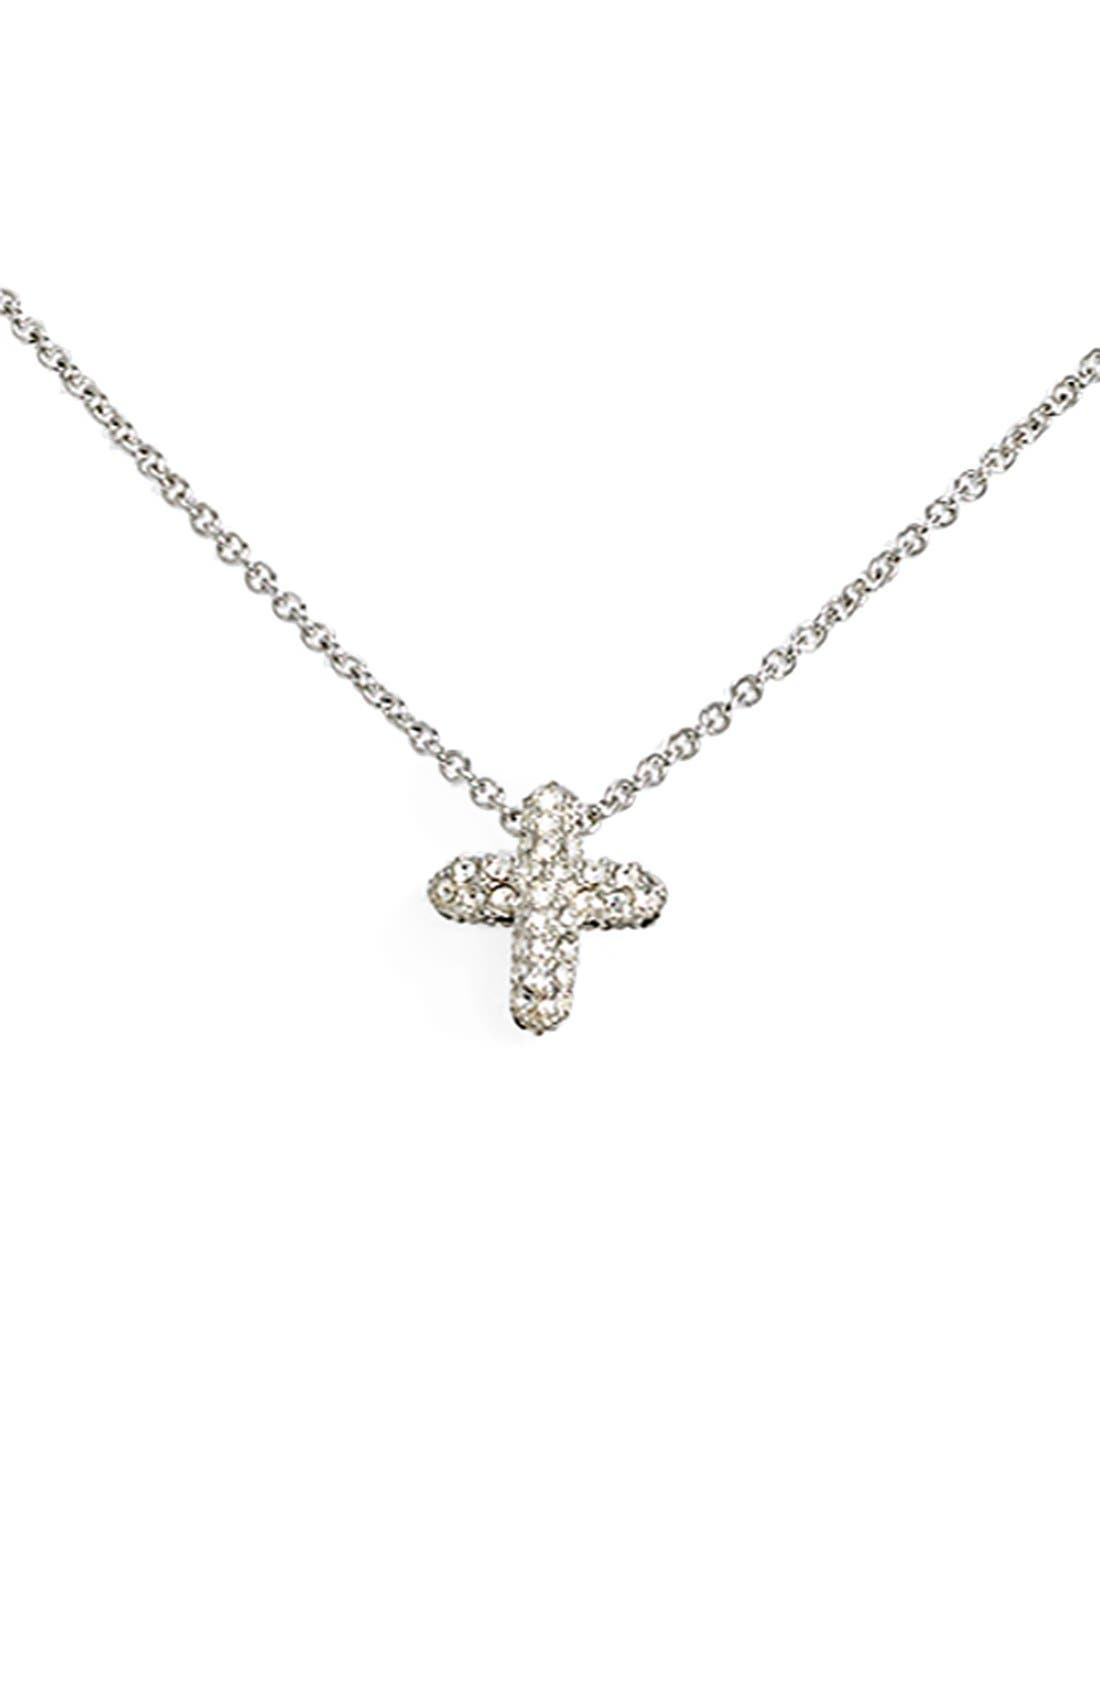 Alternate Image 1 Selected - Judith Jack Reversible Pavé Cross Pendant Necklace